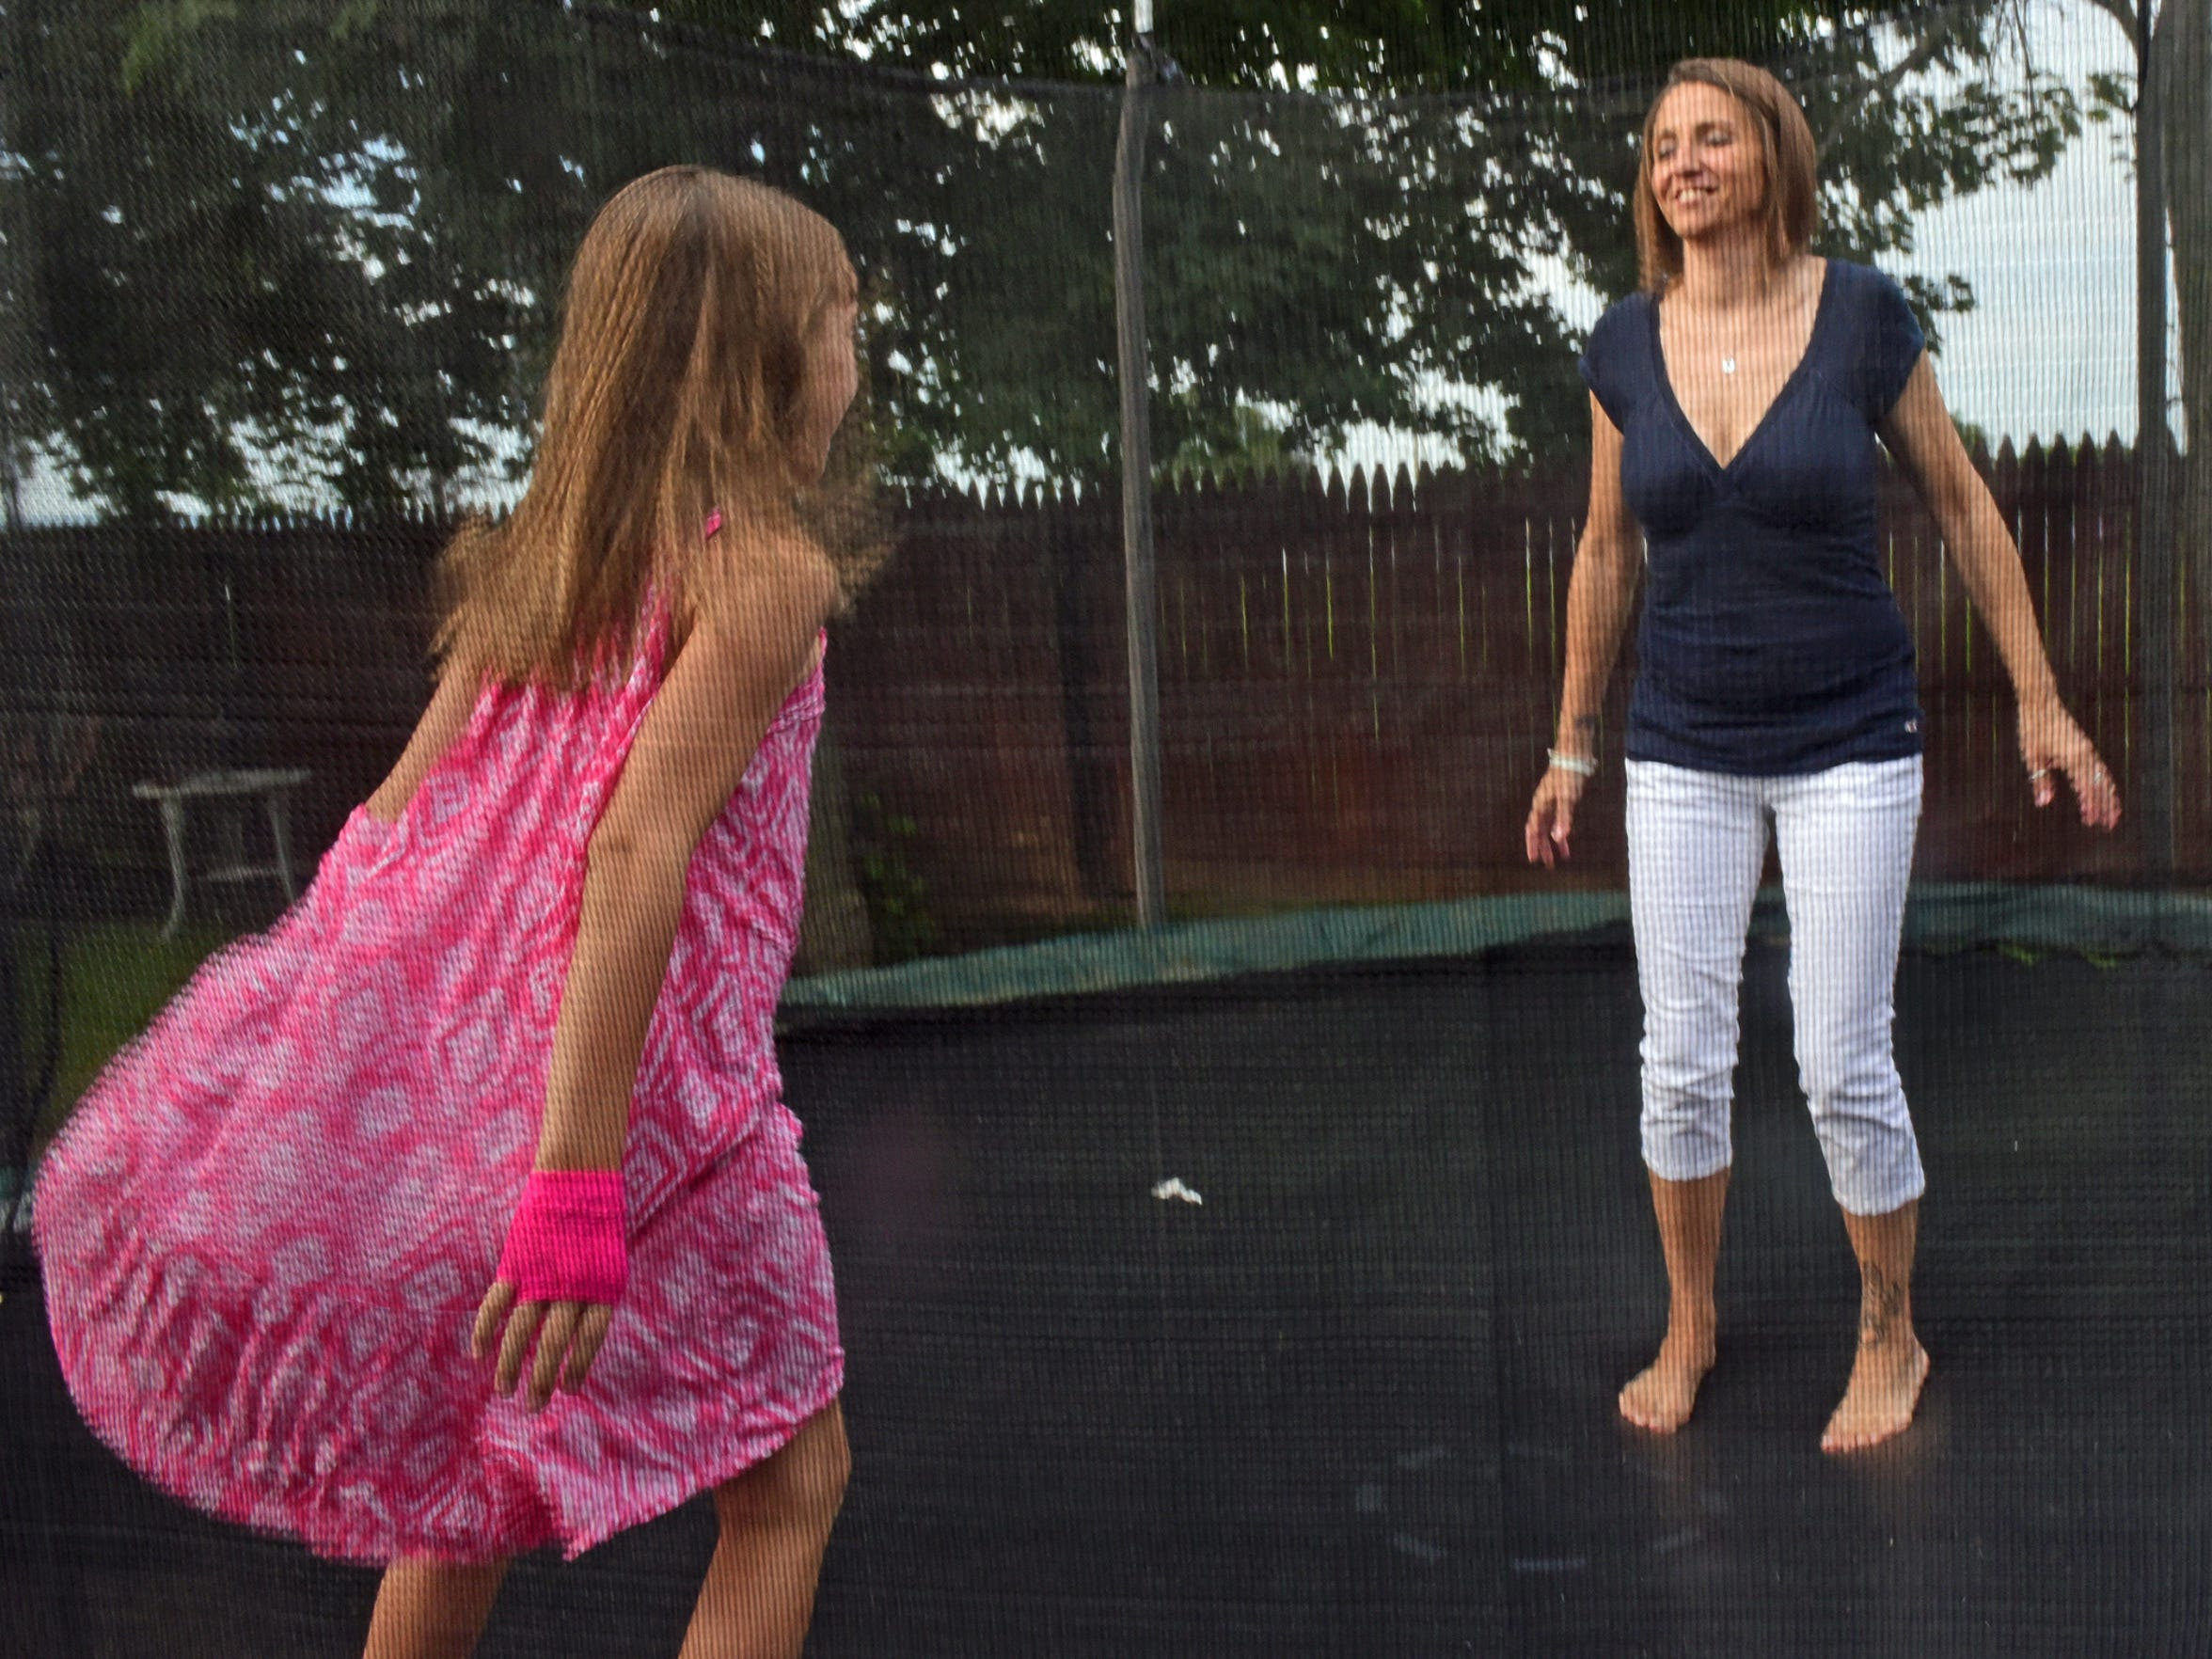 Staci Harrison plays with her daughter,  Lela, 7, in the backyard of her parent's home on Thursday, August 10, 2017 in Marion. Staci Harrison battled addiction for a decade and is embracing recovery.